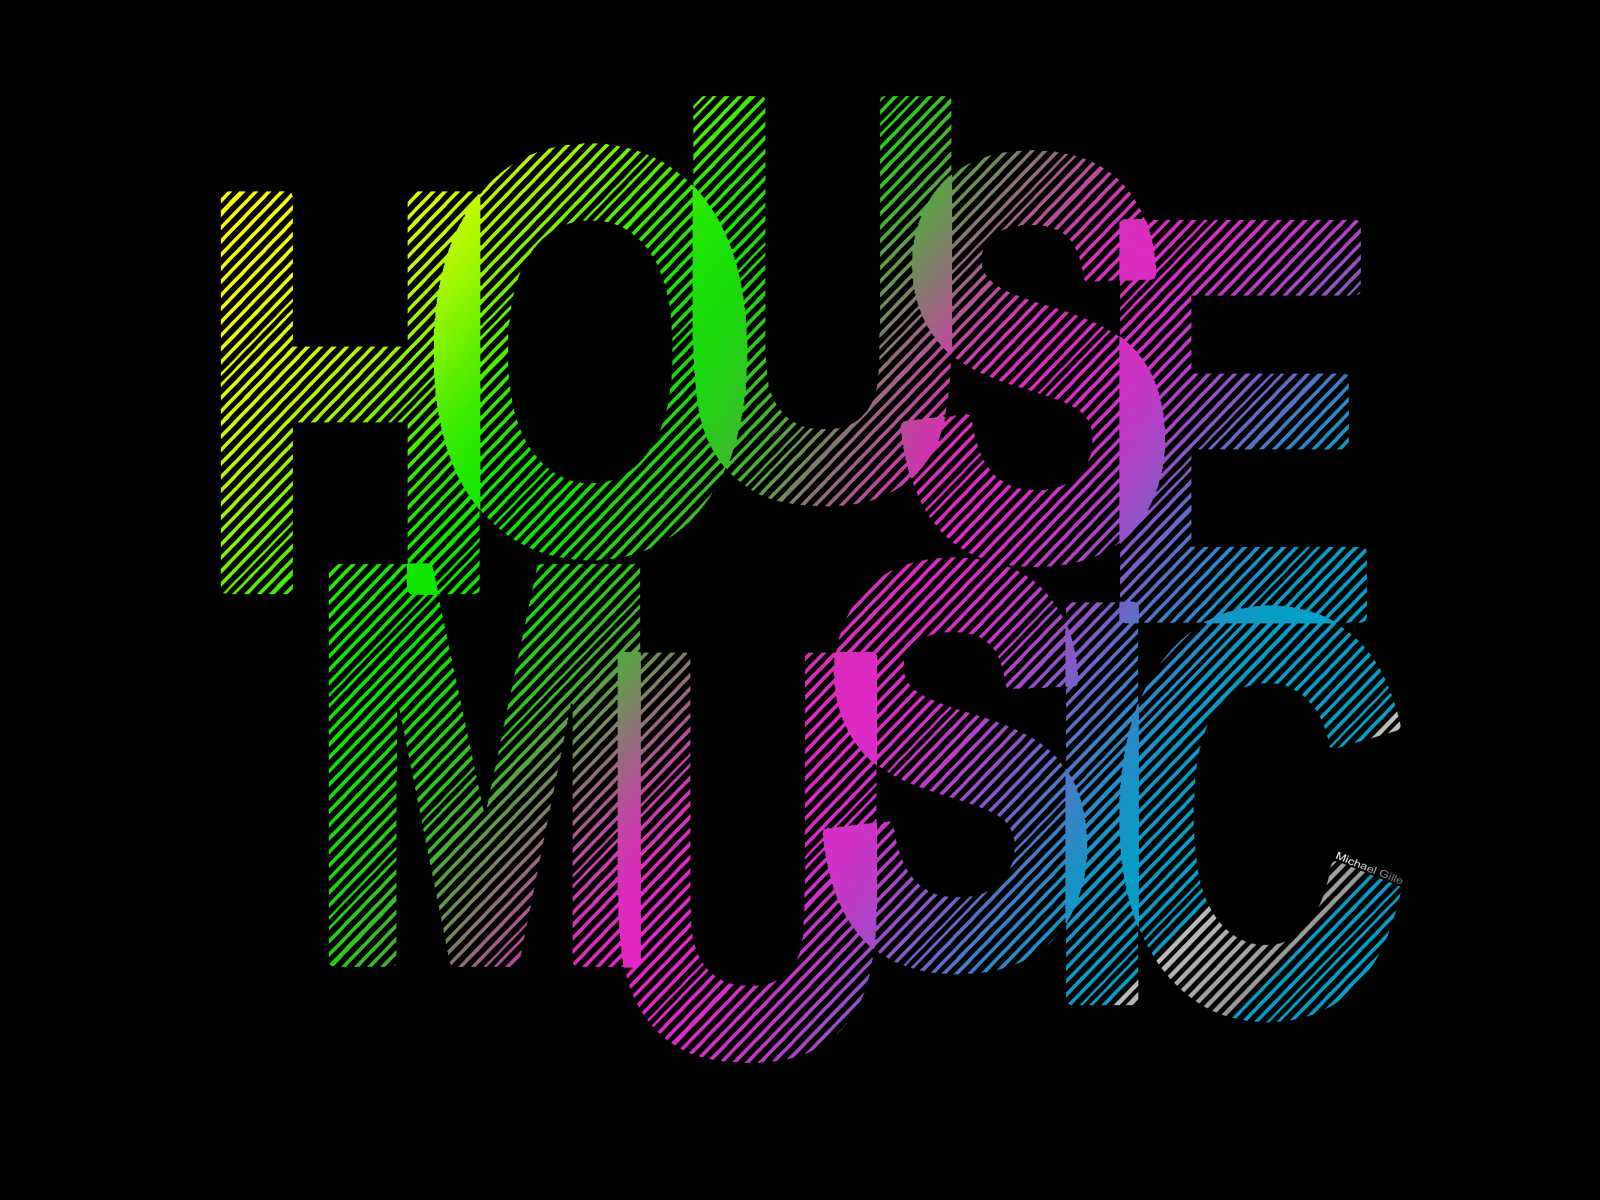 House play e musik for House music 90s list